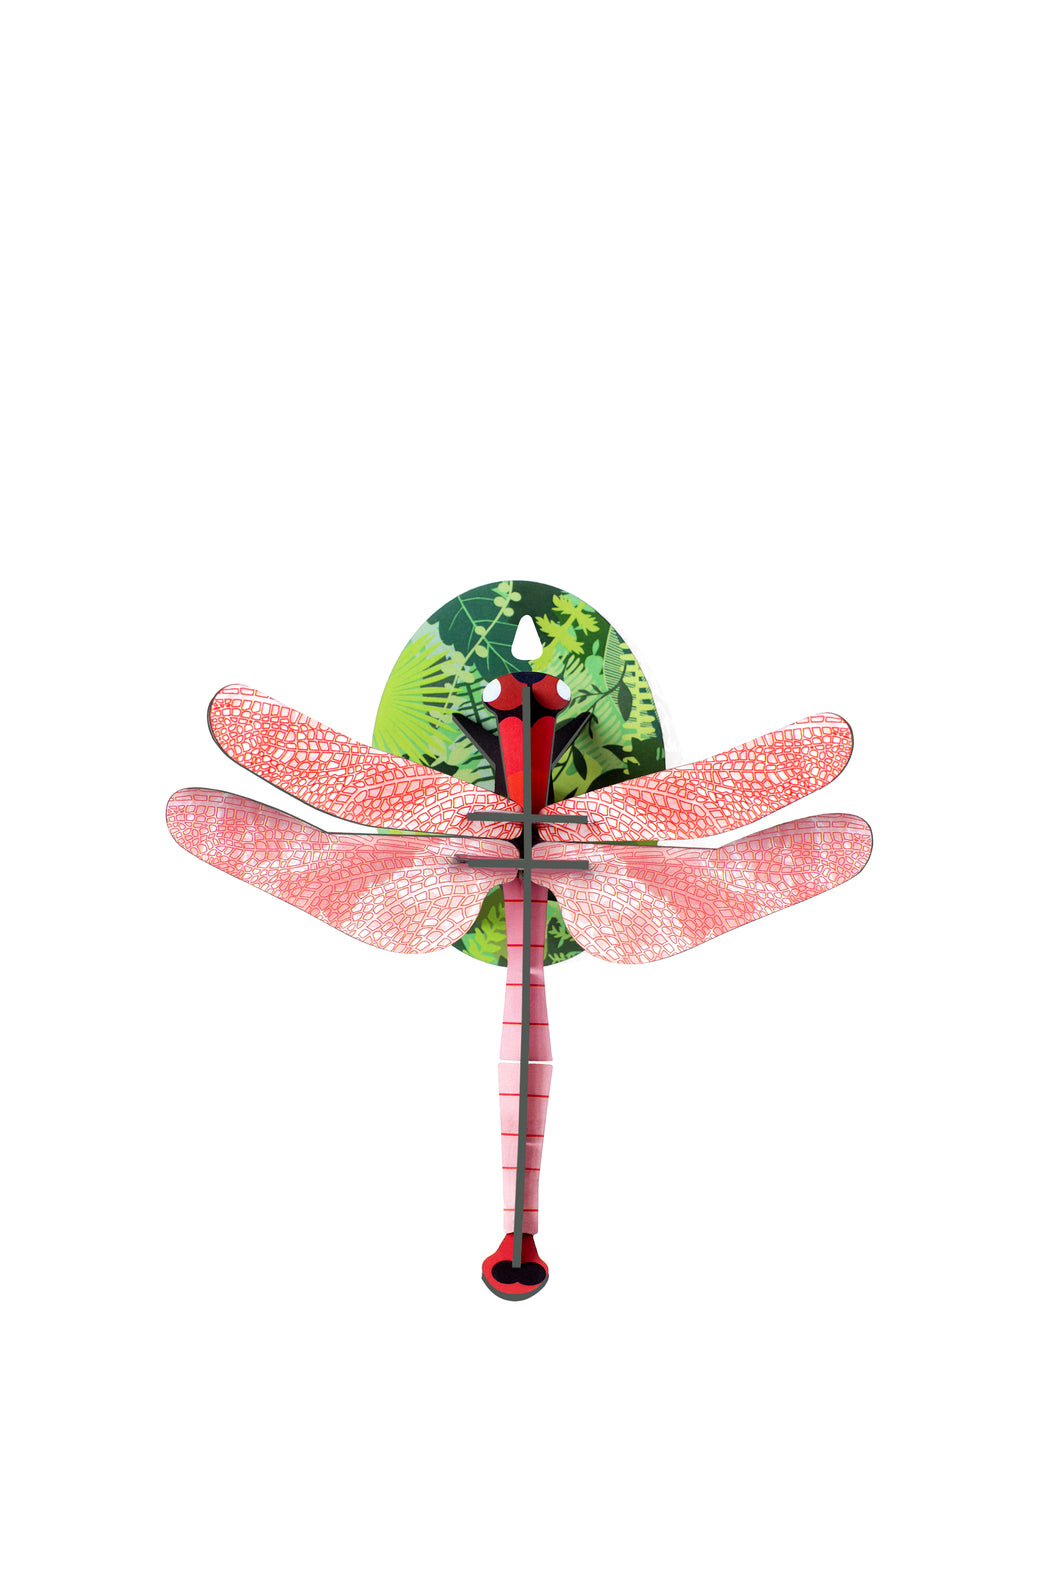 Little Wonders of Nature-Pink Dragonfly